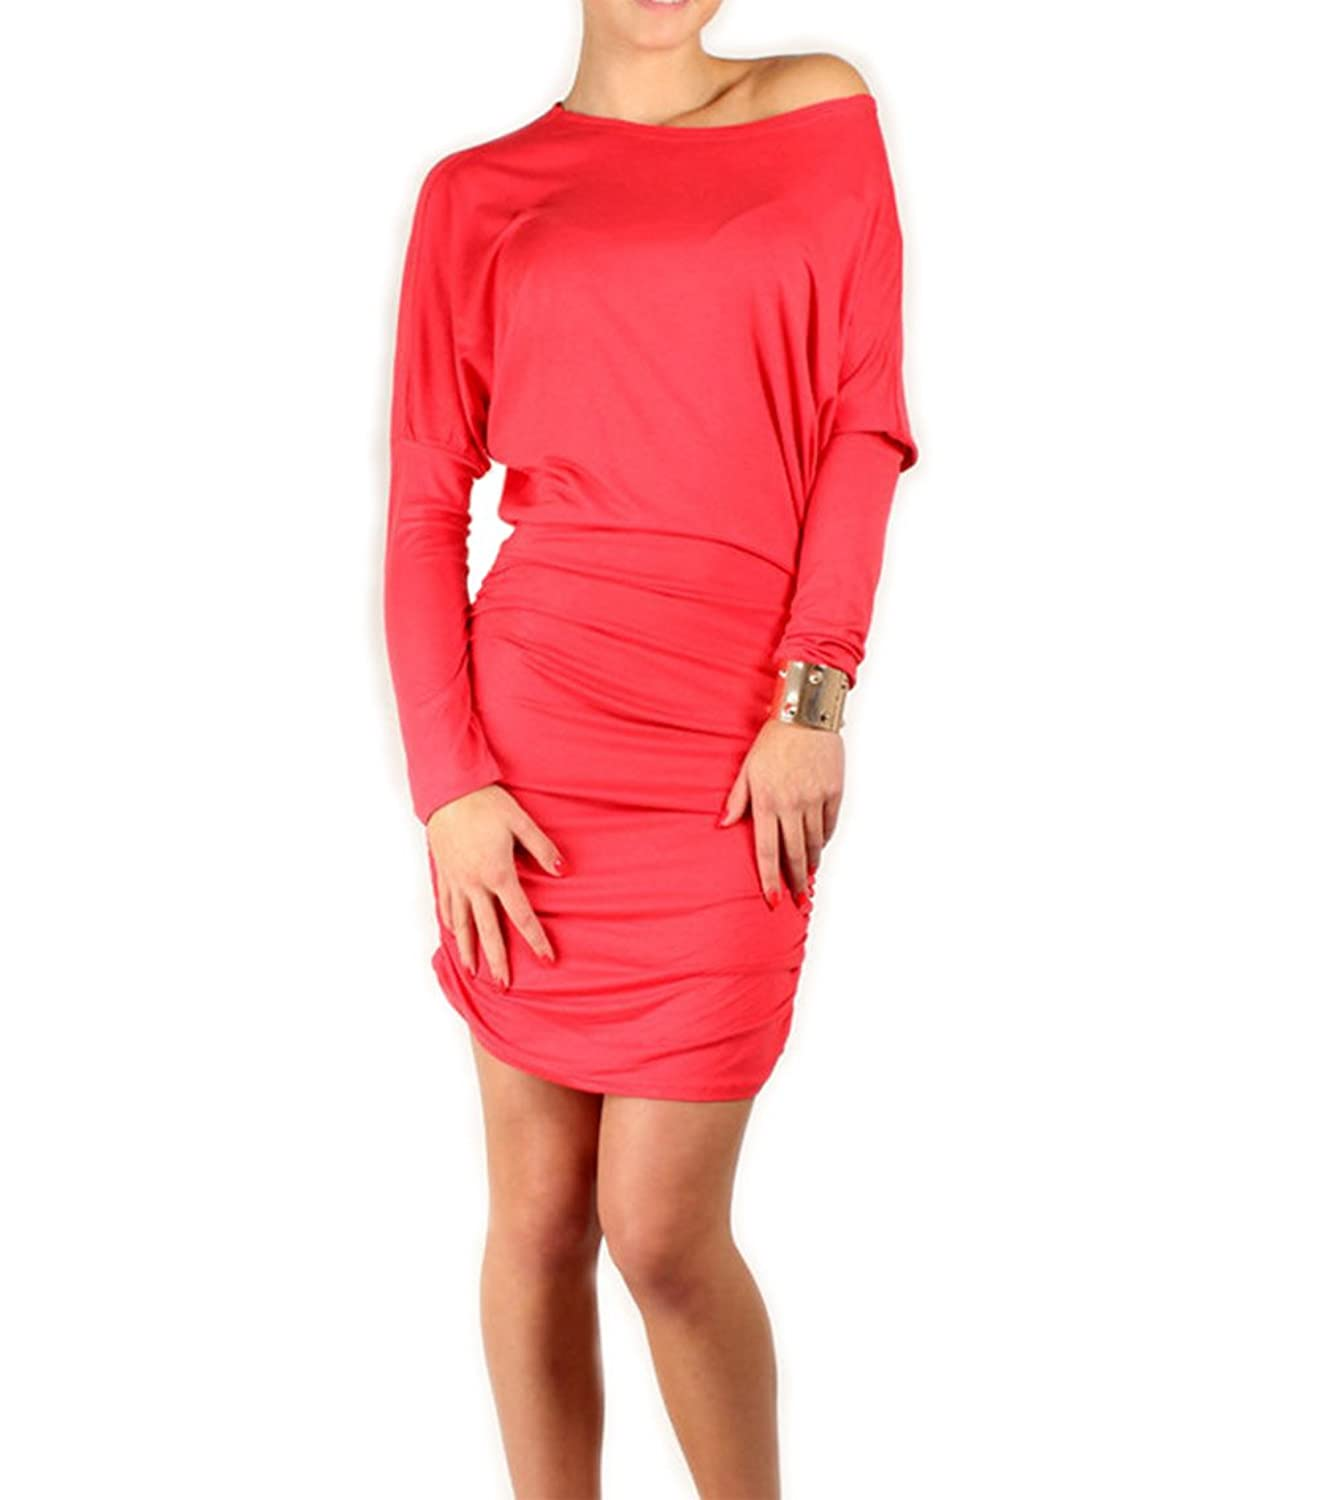 Chaomingzhen Women's Long Sleeve Bodycon Cocktail Party Mini Dress